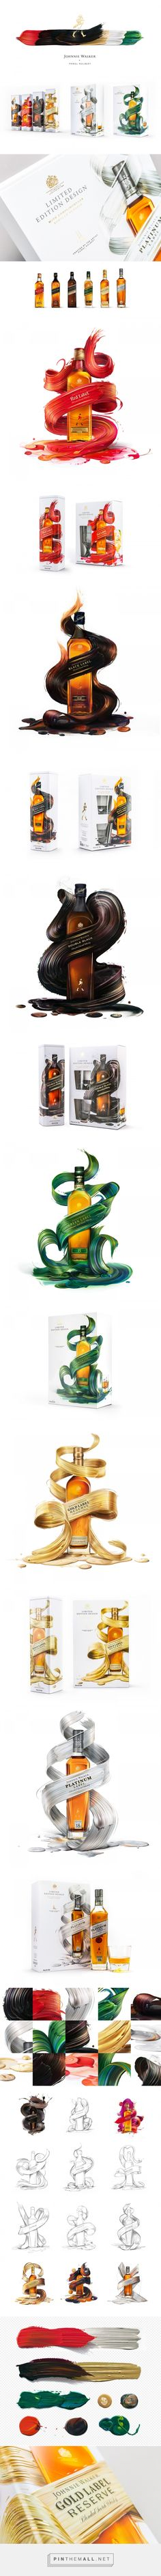 Johnnie Walker x Pawel Nolbert Limited Artist Edition - http://www.packagingoftheworld.com/2017/01/johnnie-walker-x-pawel-nolbert-limited.html